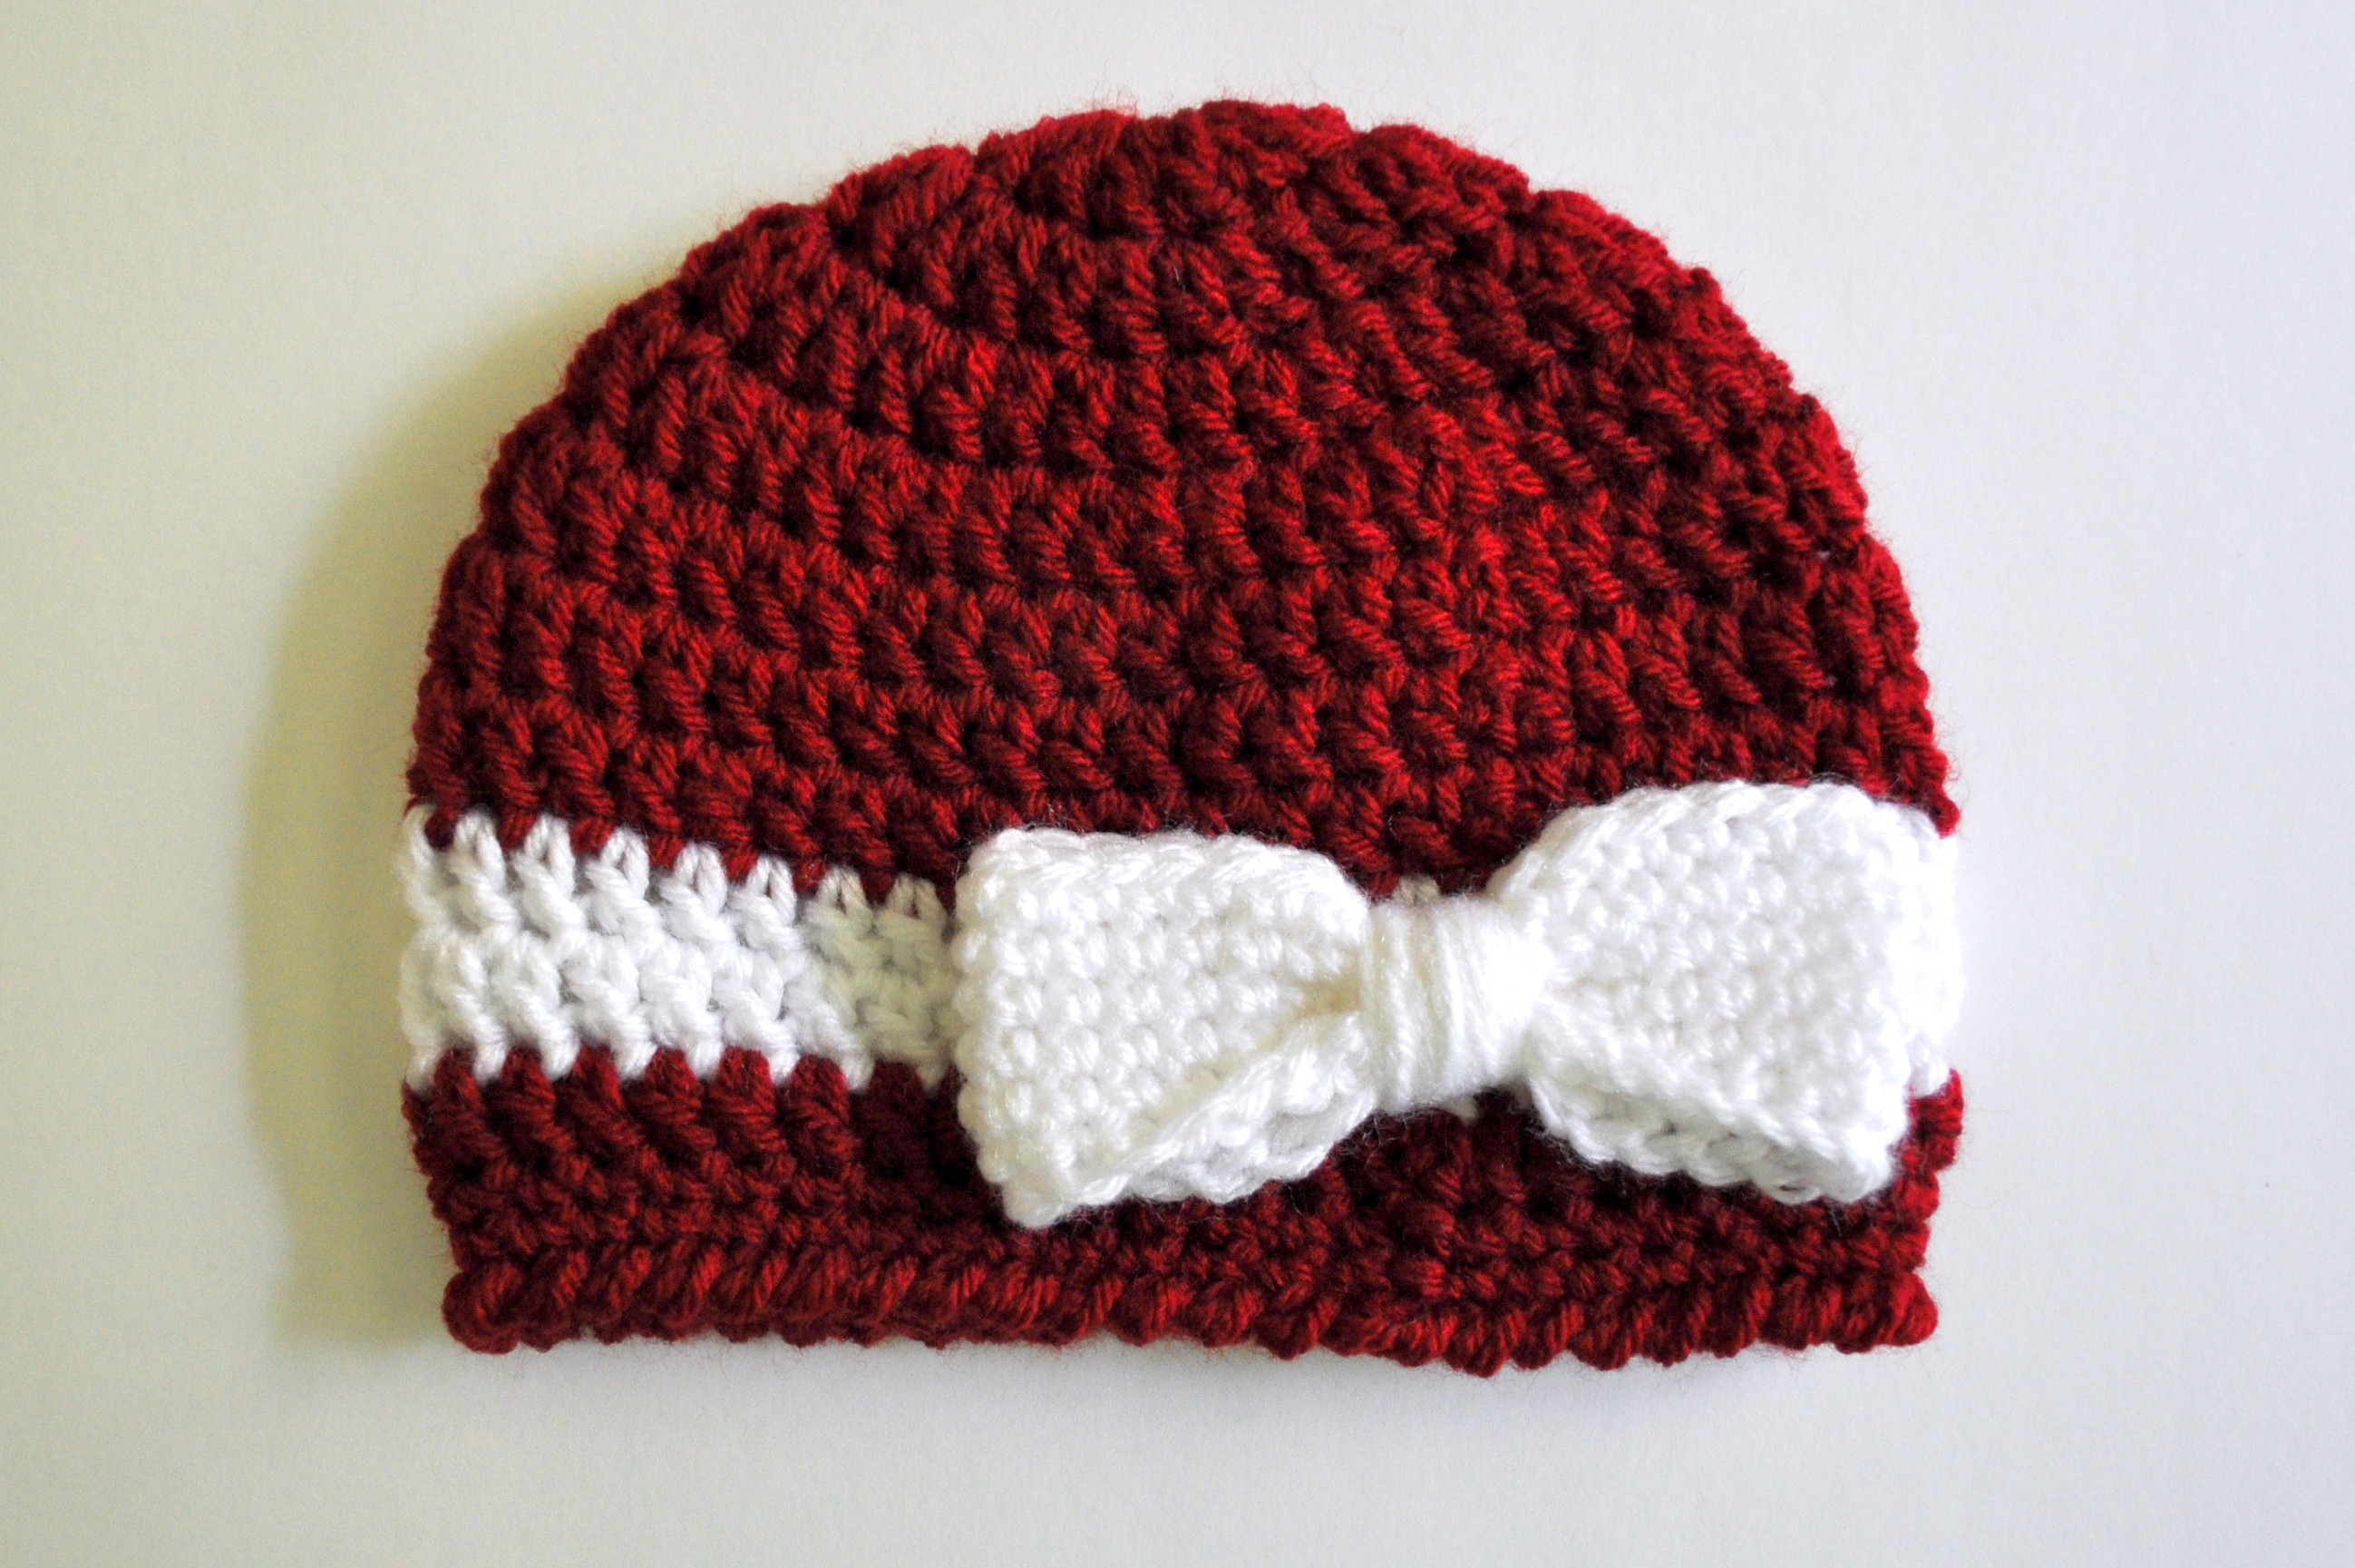 Crochet Girl Hat Awesome Free Crochet Patterns for Girls Hats Of Superb 47 Pics Crochet Girl Hat